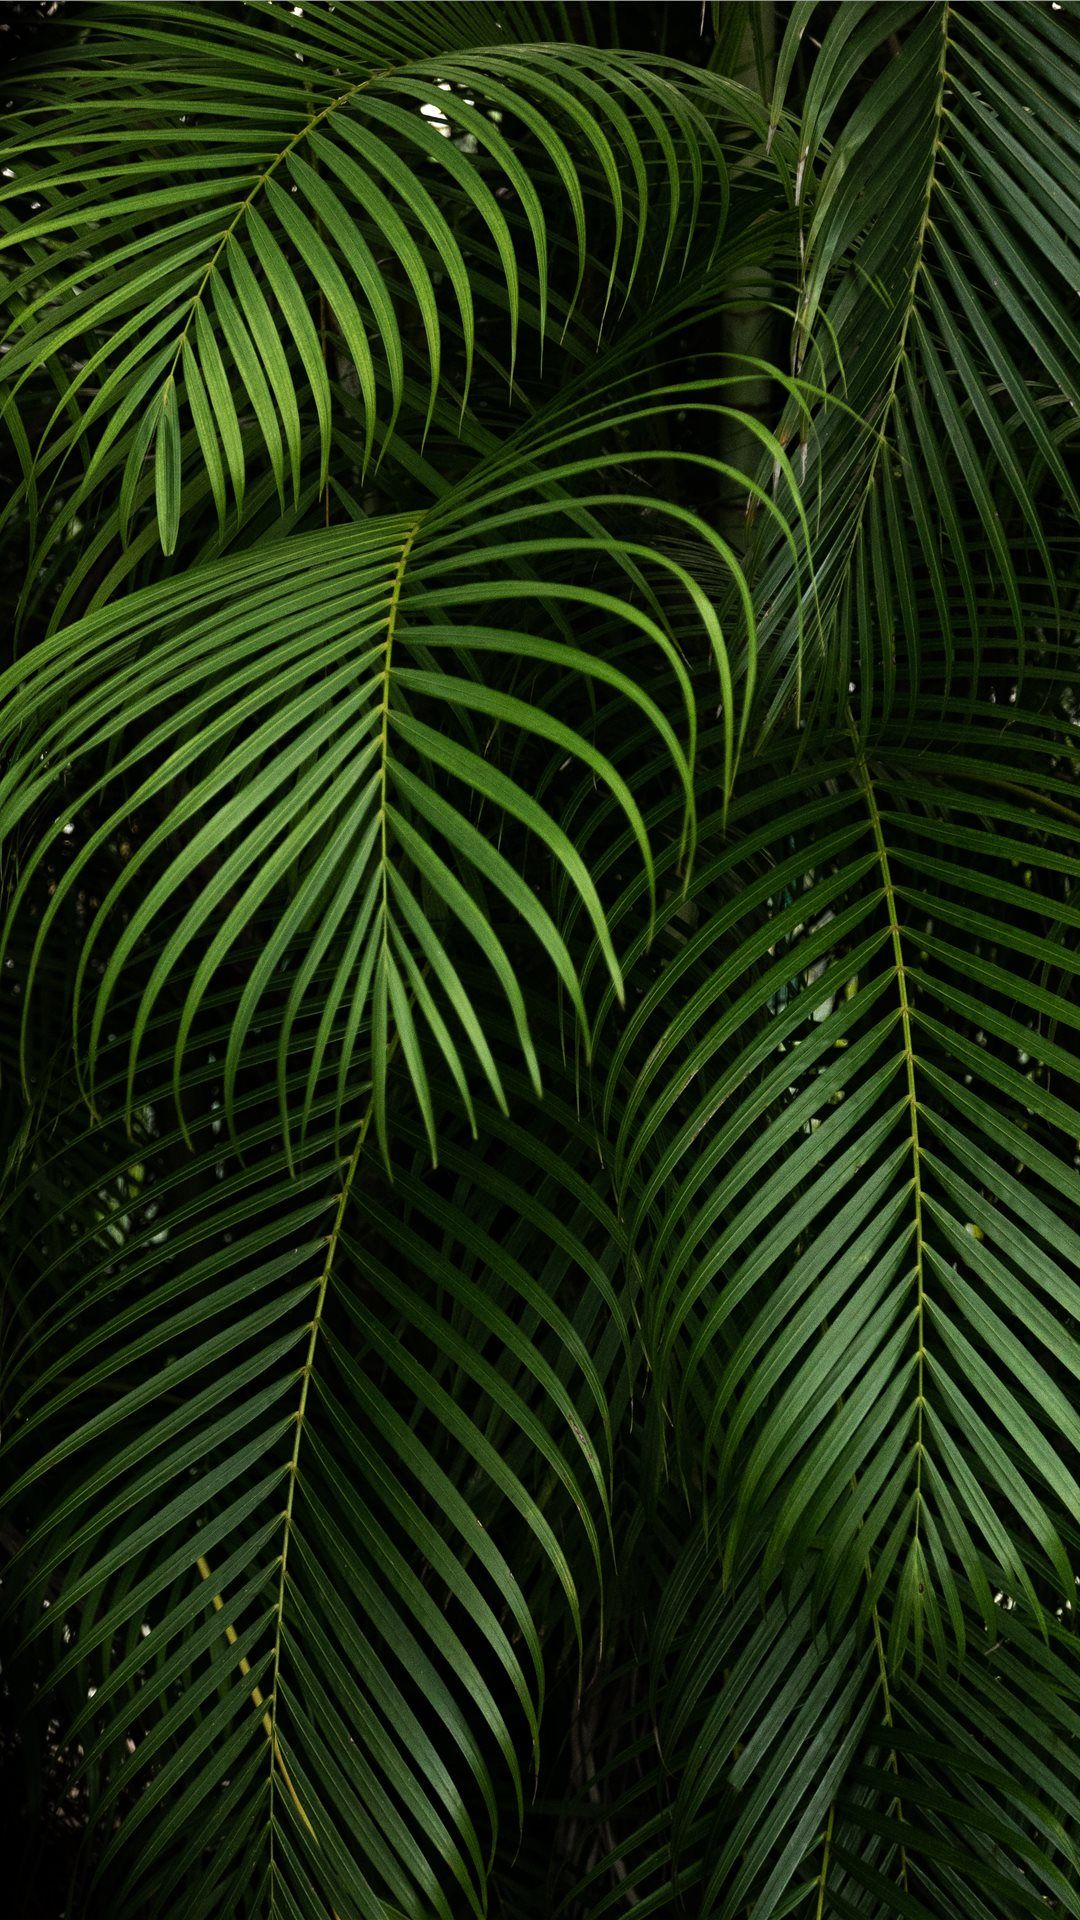 Jungle Iphone Wallpapers Top Free Jungle Iphone Backgrounds Wallpaperaccess